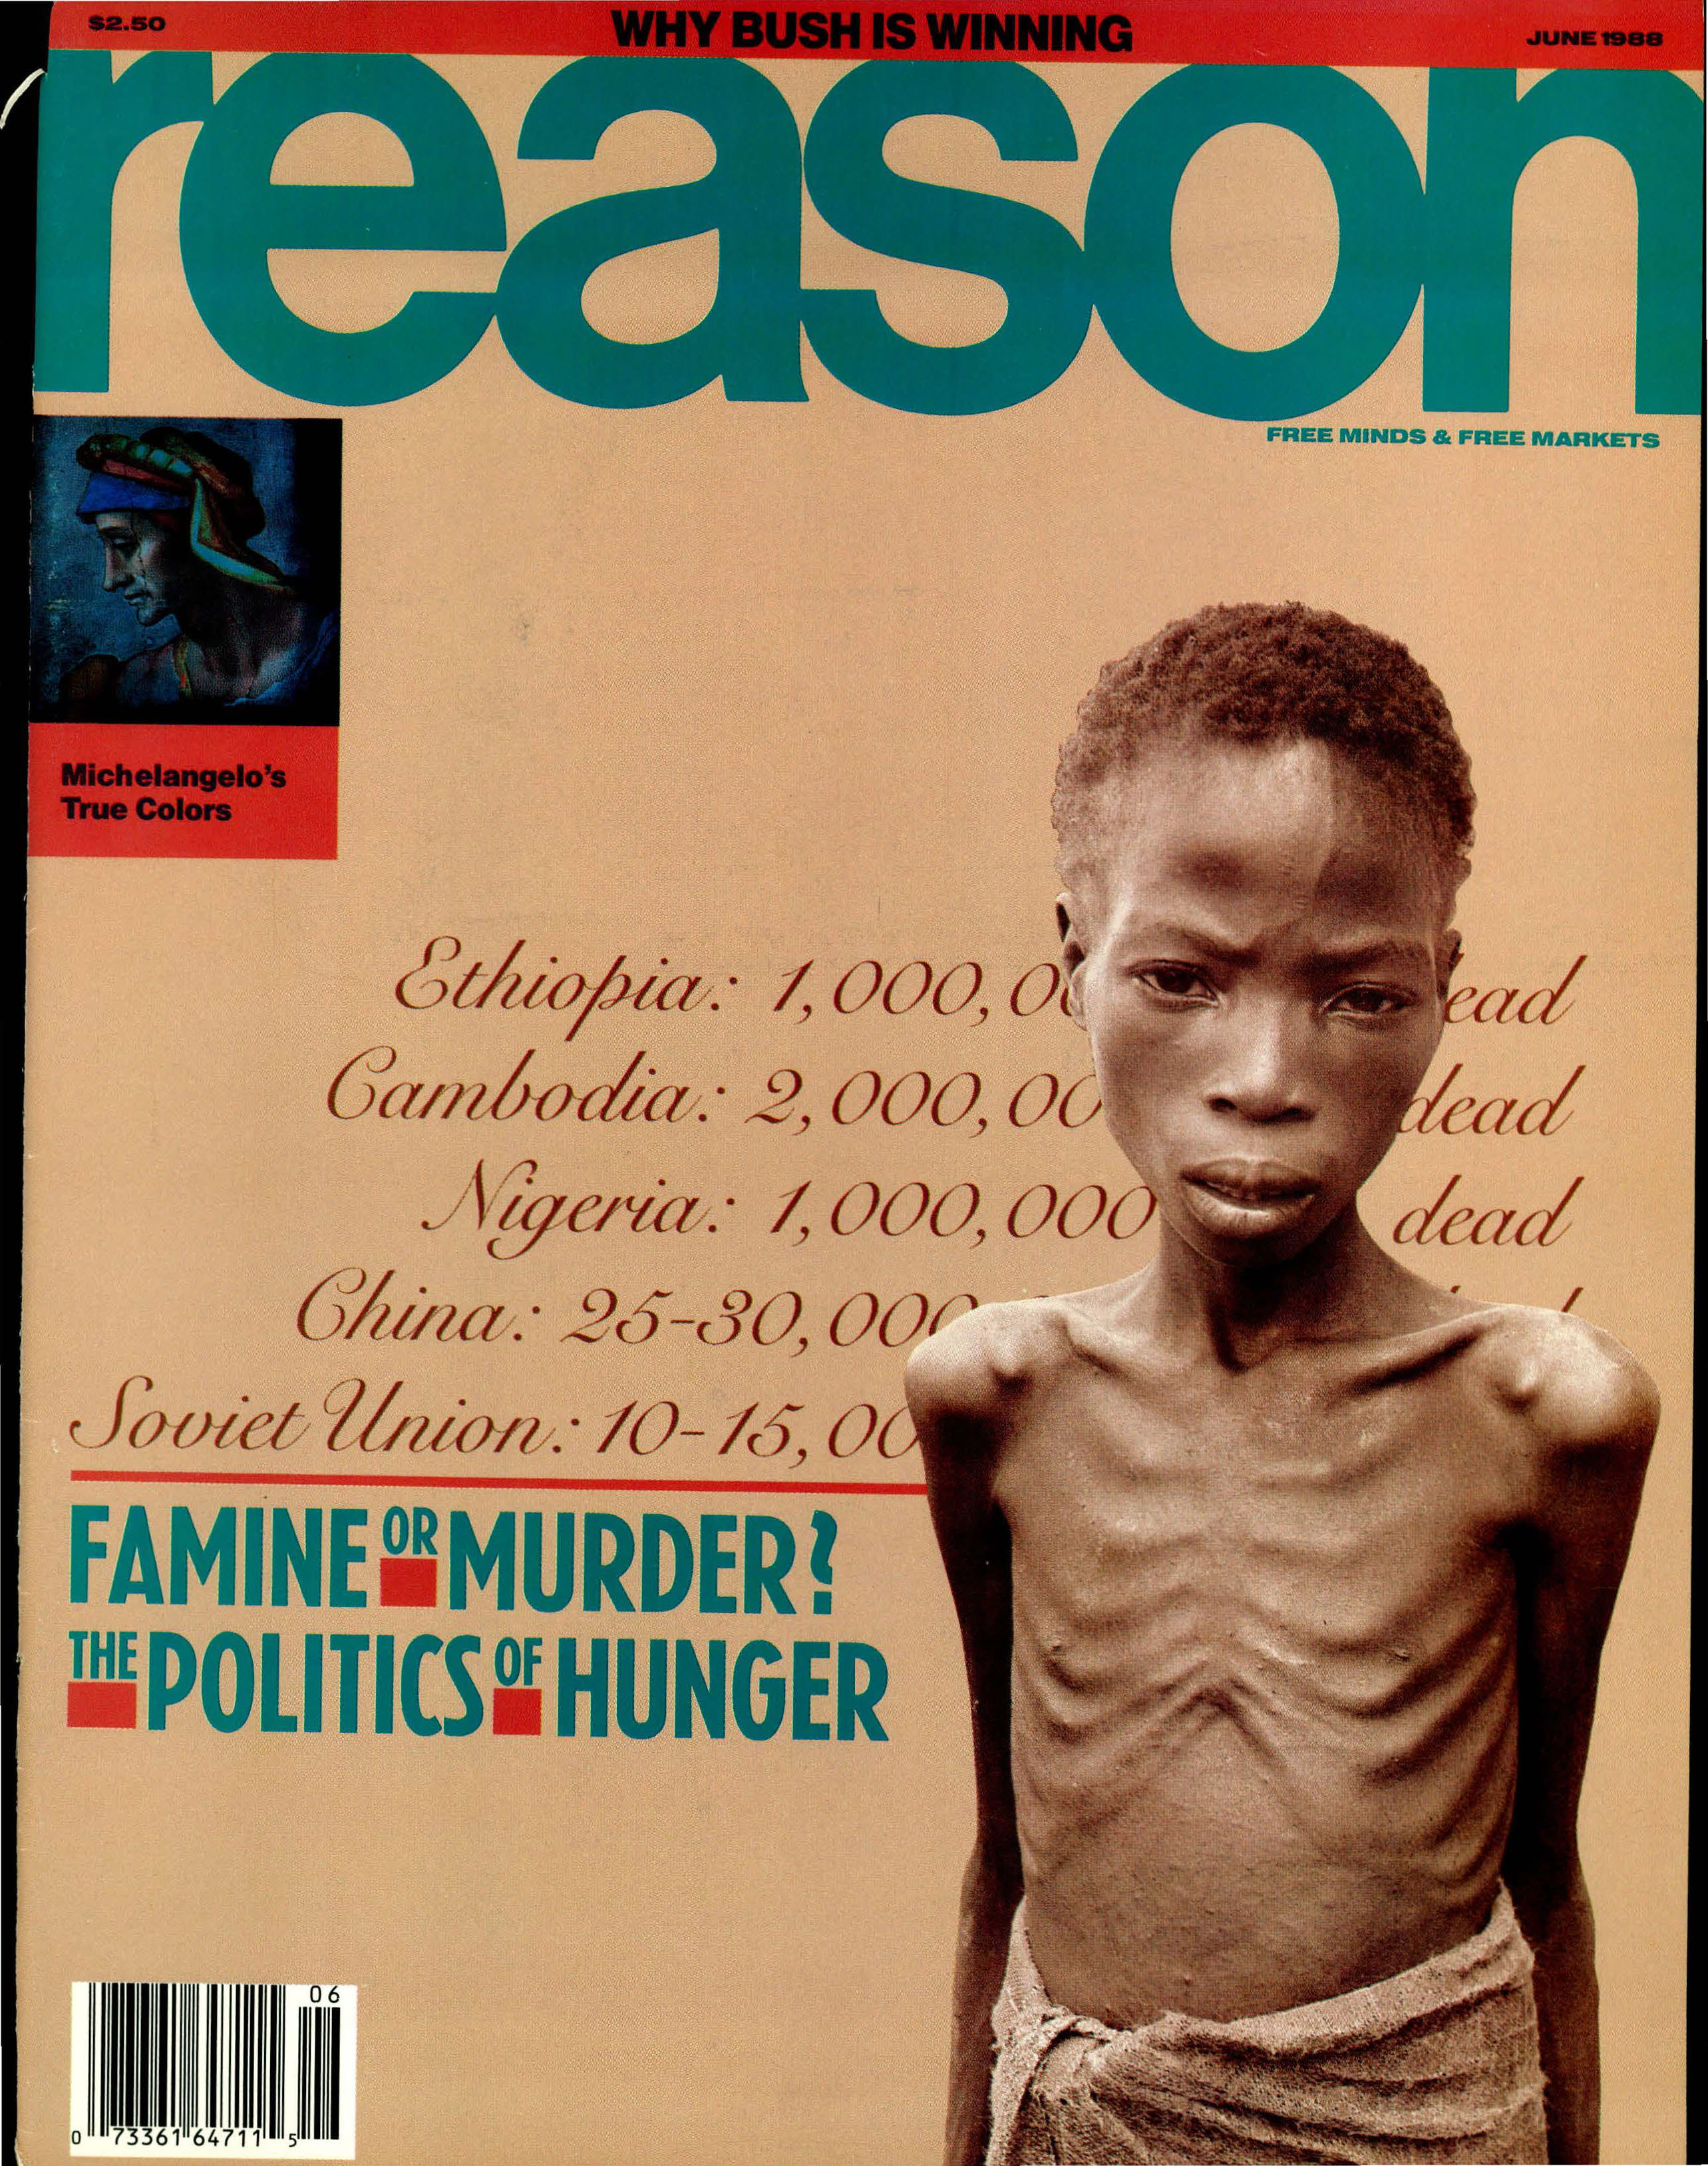 Reason Magazine, June 1988 cover image